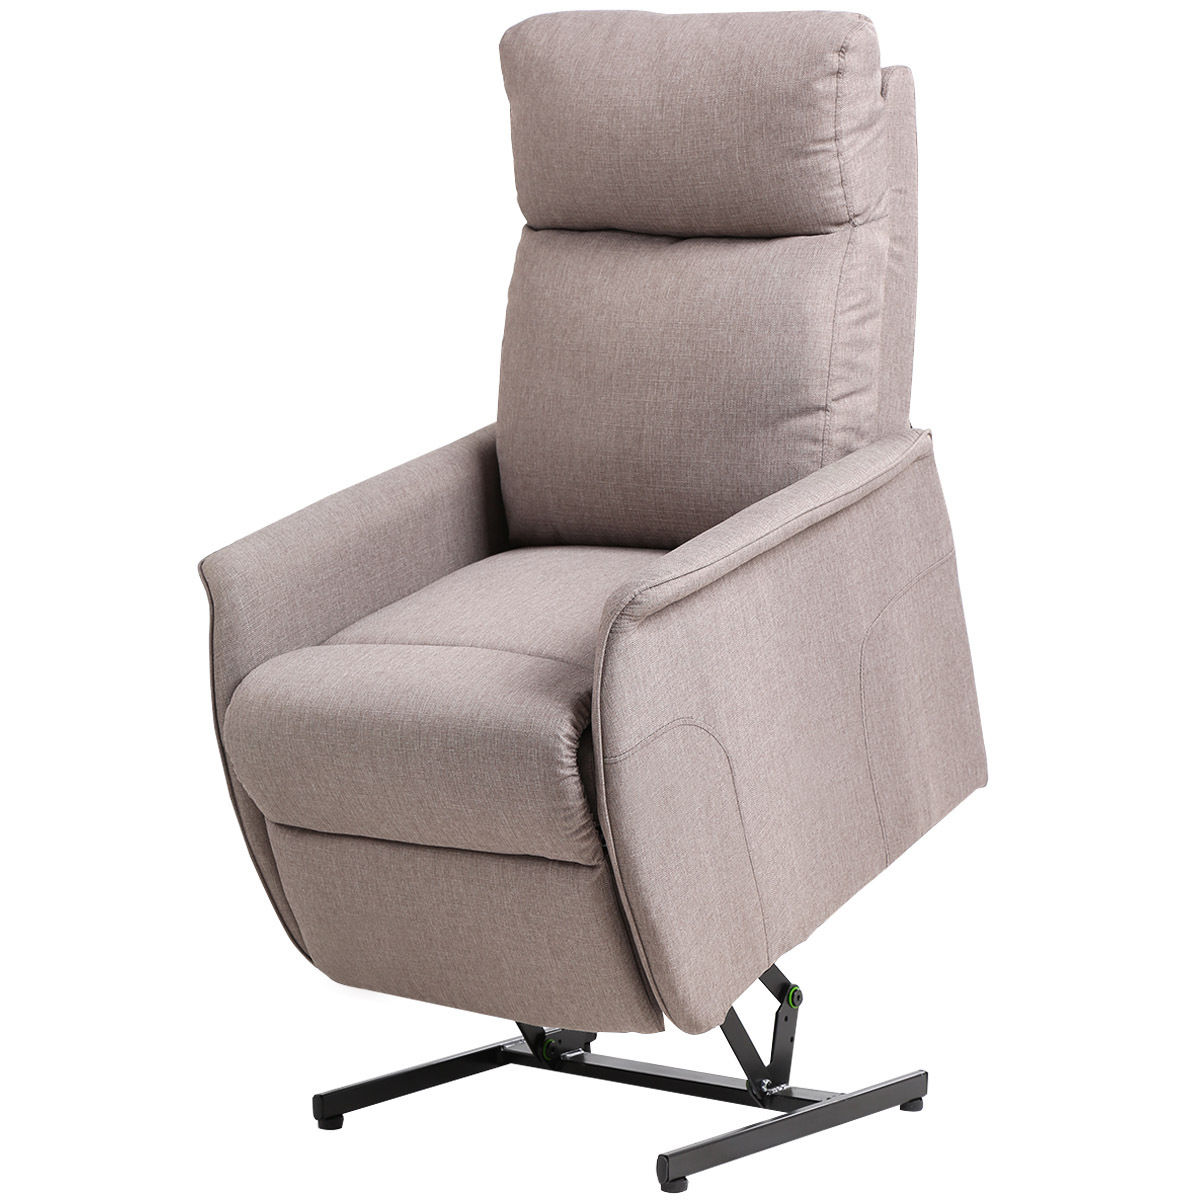 Costway Electric Power Lift Chair Recliner Sofa Fabric Padded Seat Living Room w Remote by Costway